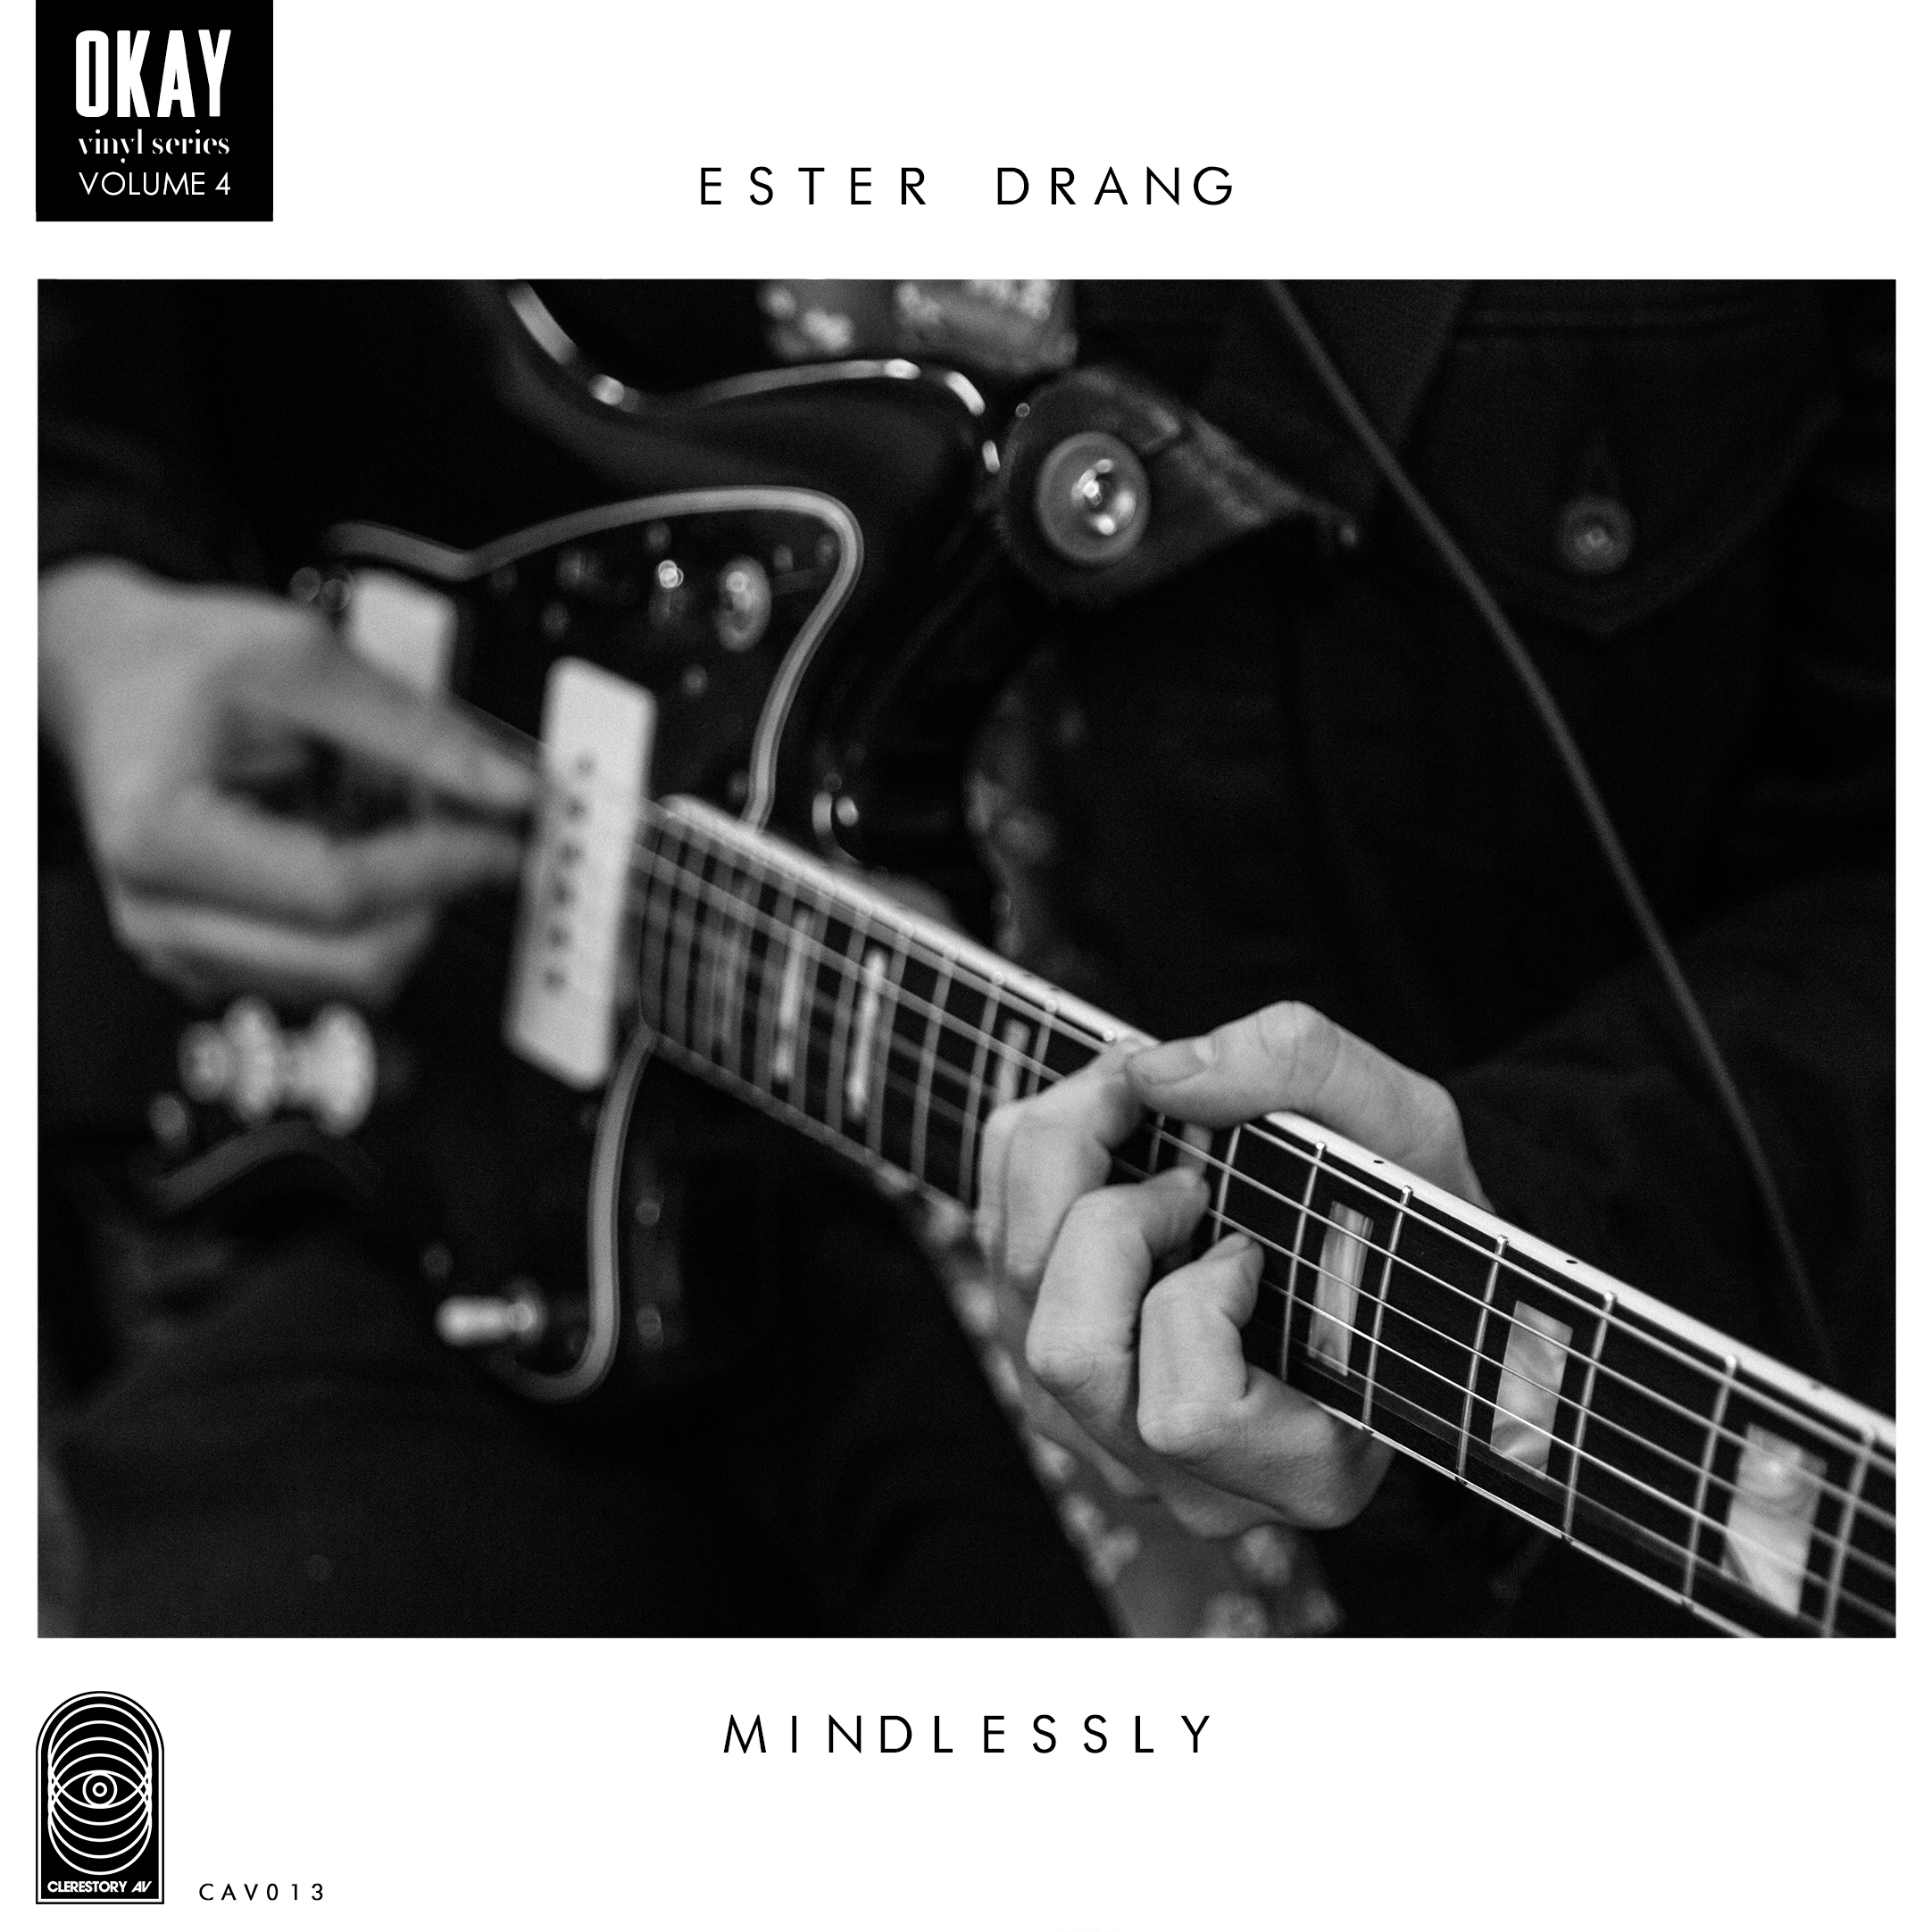 ESTER DRANG / OKAY Vinyl Series Vol. 4